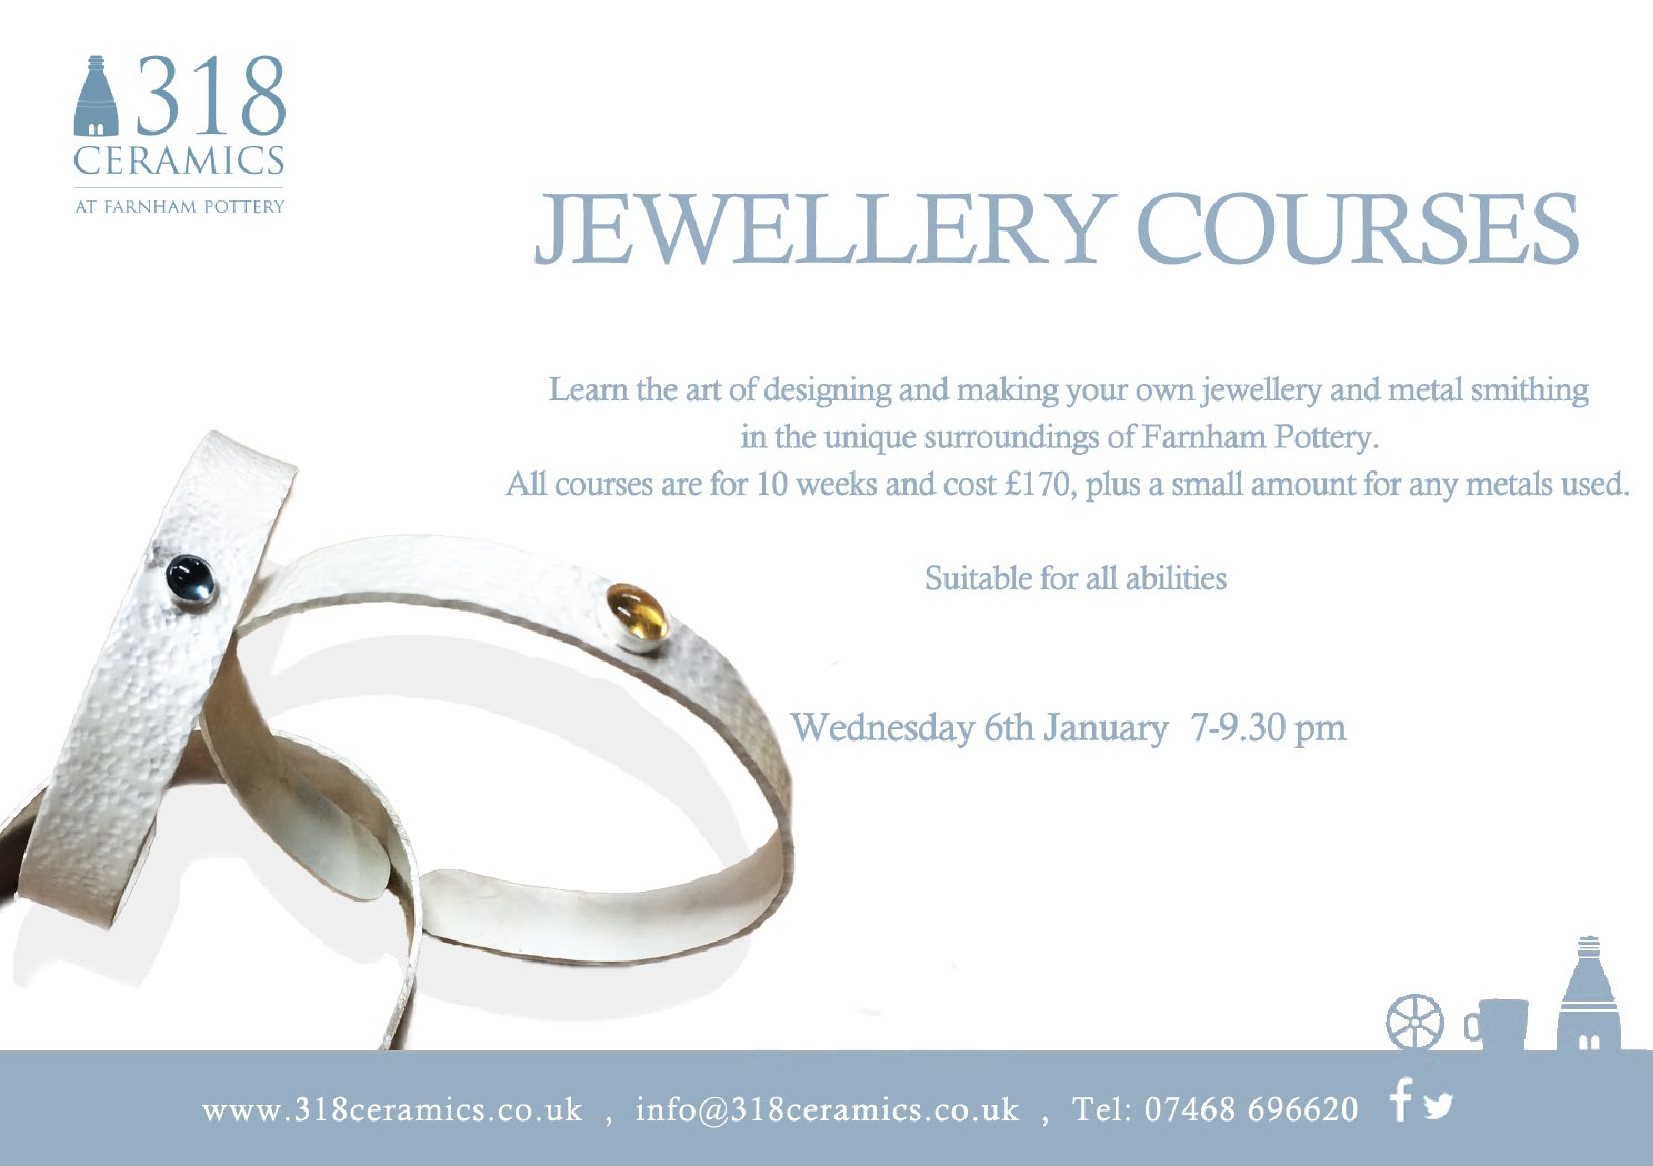 318 Ceramics – Jewellery Course